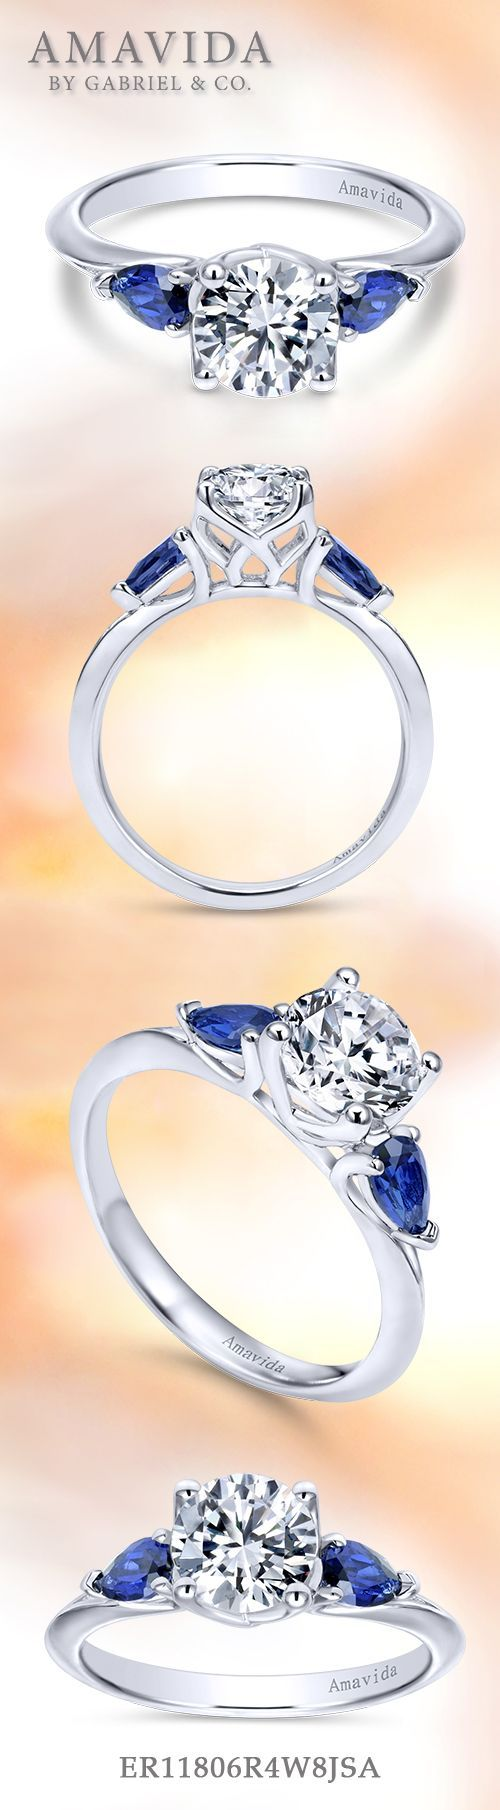 Amavida by Gabriel & Co. - Voted #1 Most Preferred Bridal Brand.   This impeccable three (3) stone engagement ring features two regal pear-shaped sapphire side stones.